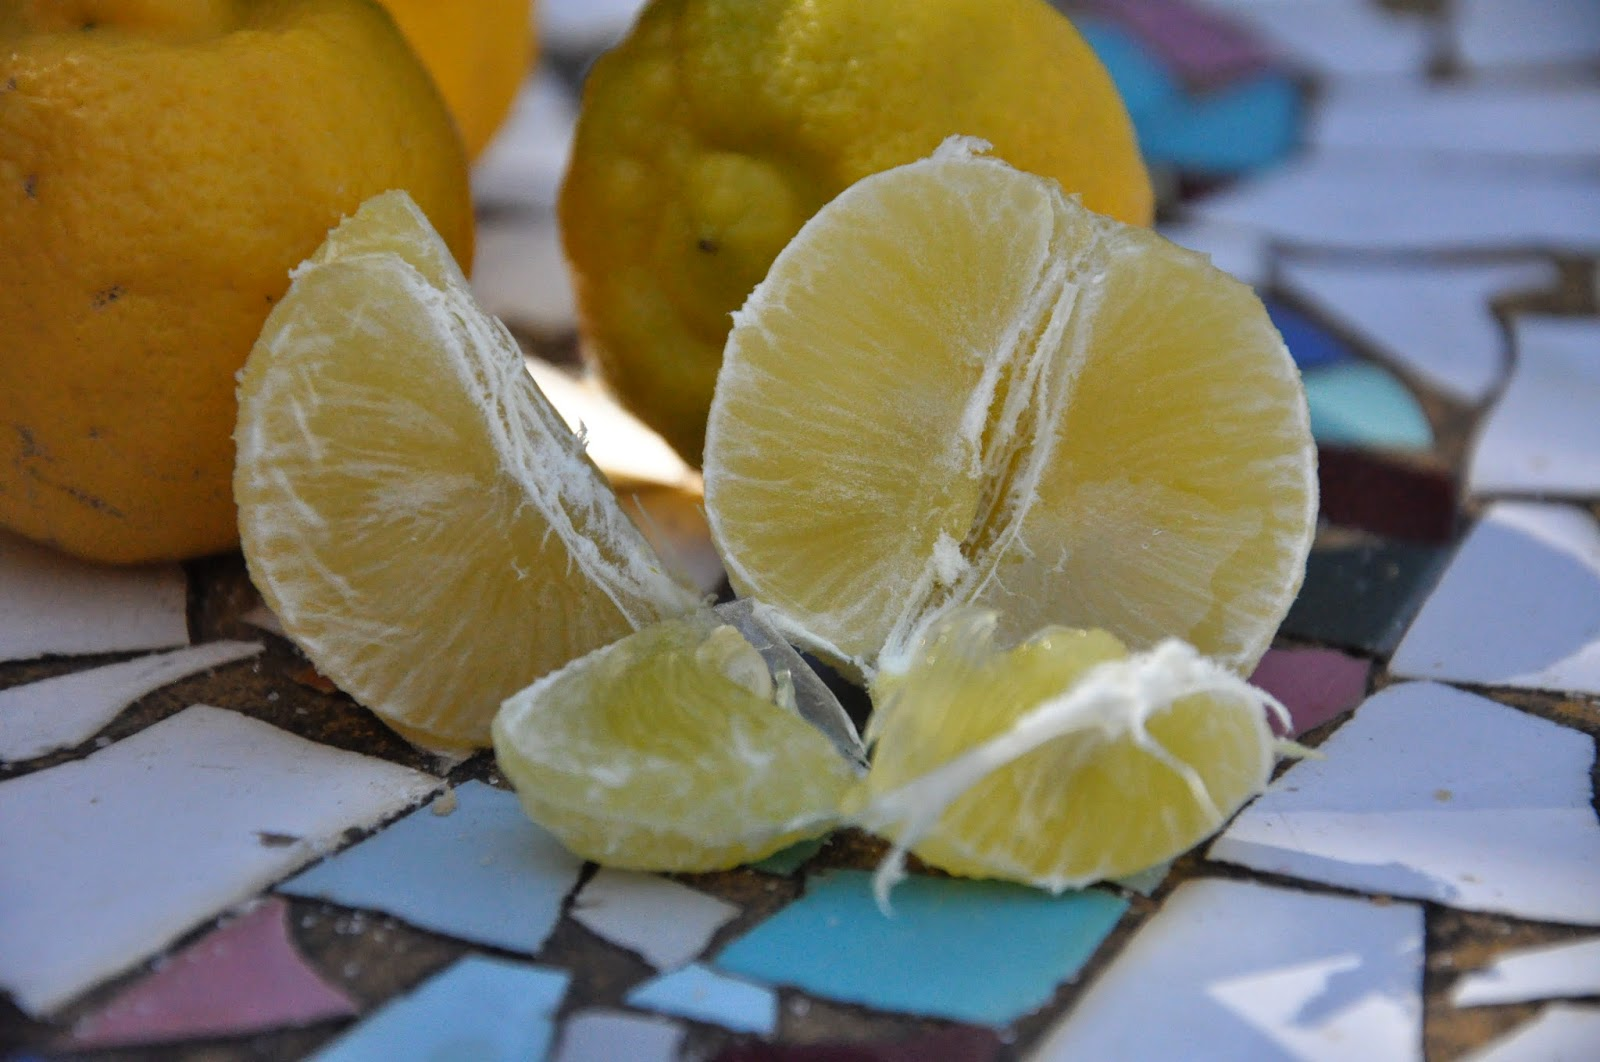 Sweet Limes (Lima Dulce) Information and Facts